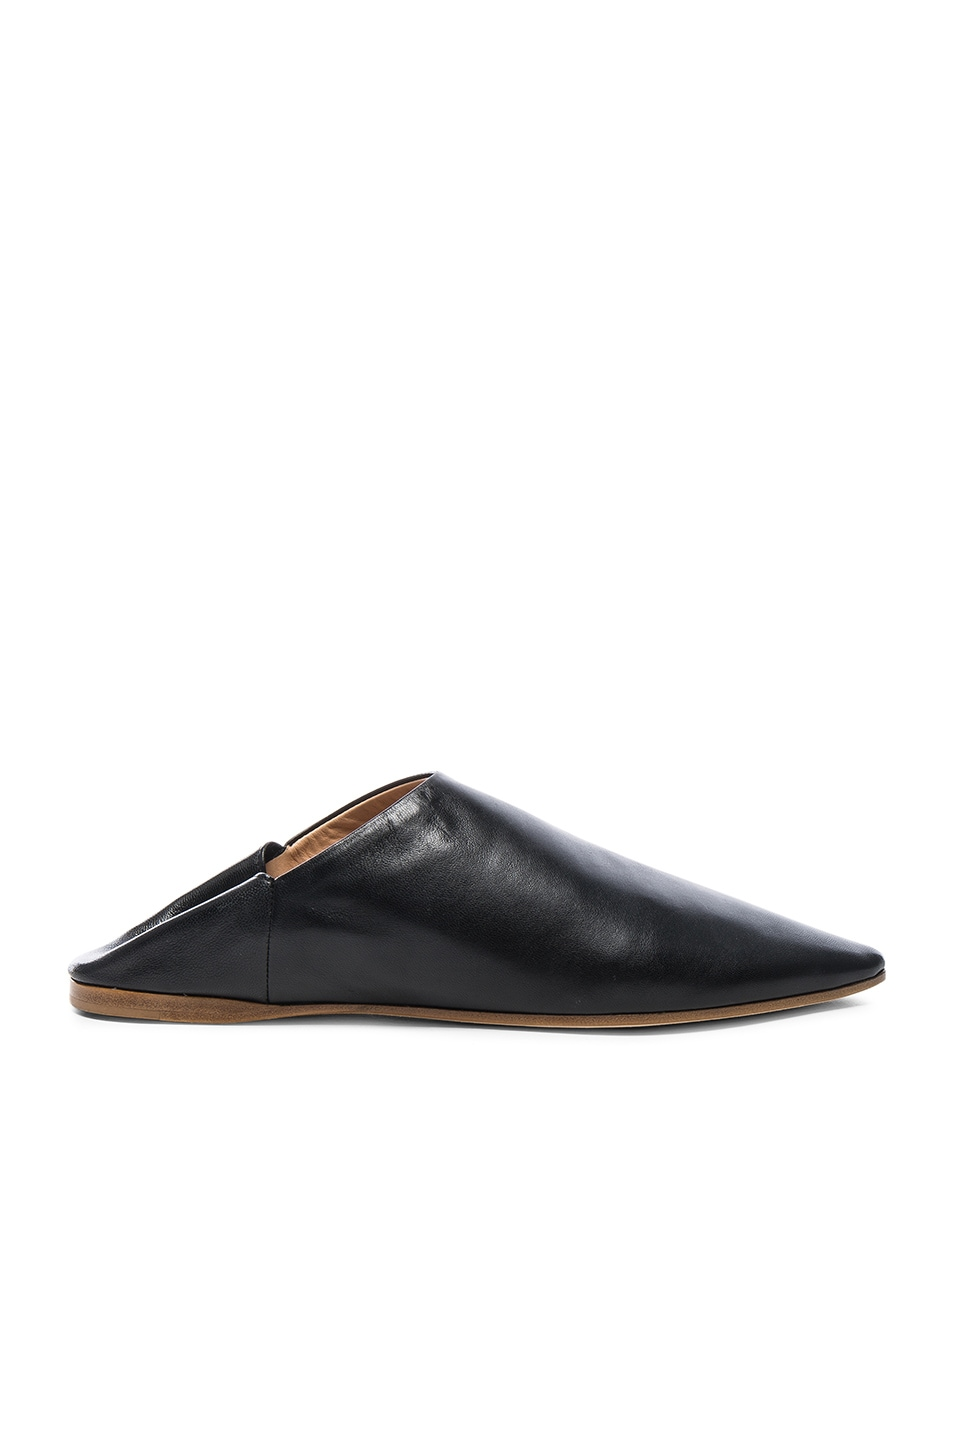 Image 1 of Acne Studios Leather Amina Babouche Slippers in Black